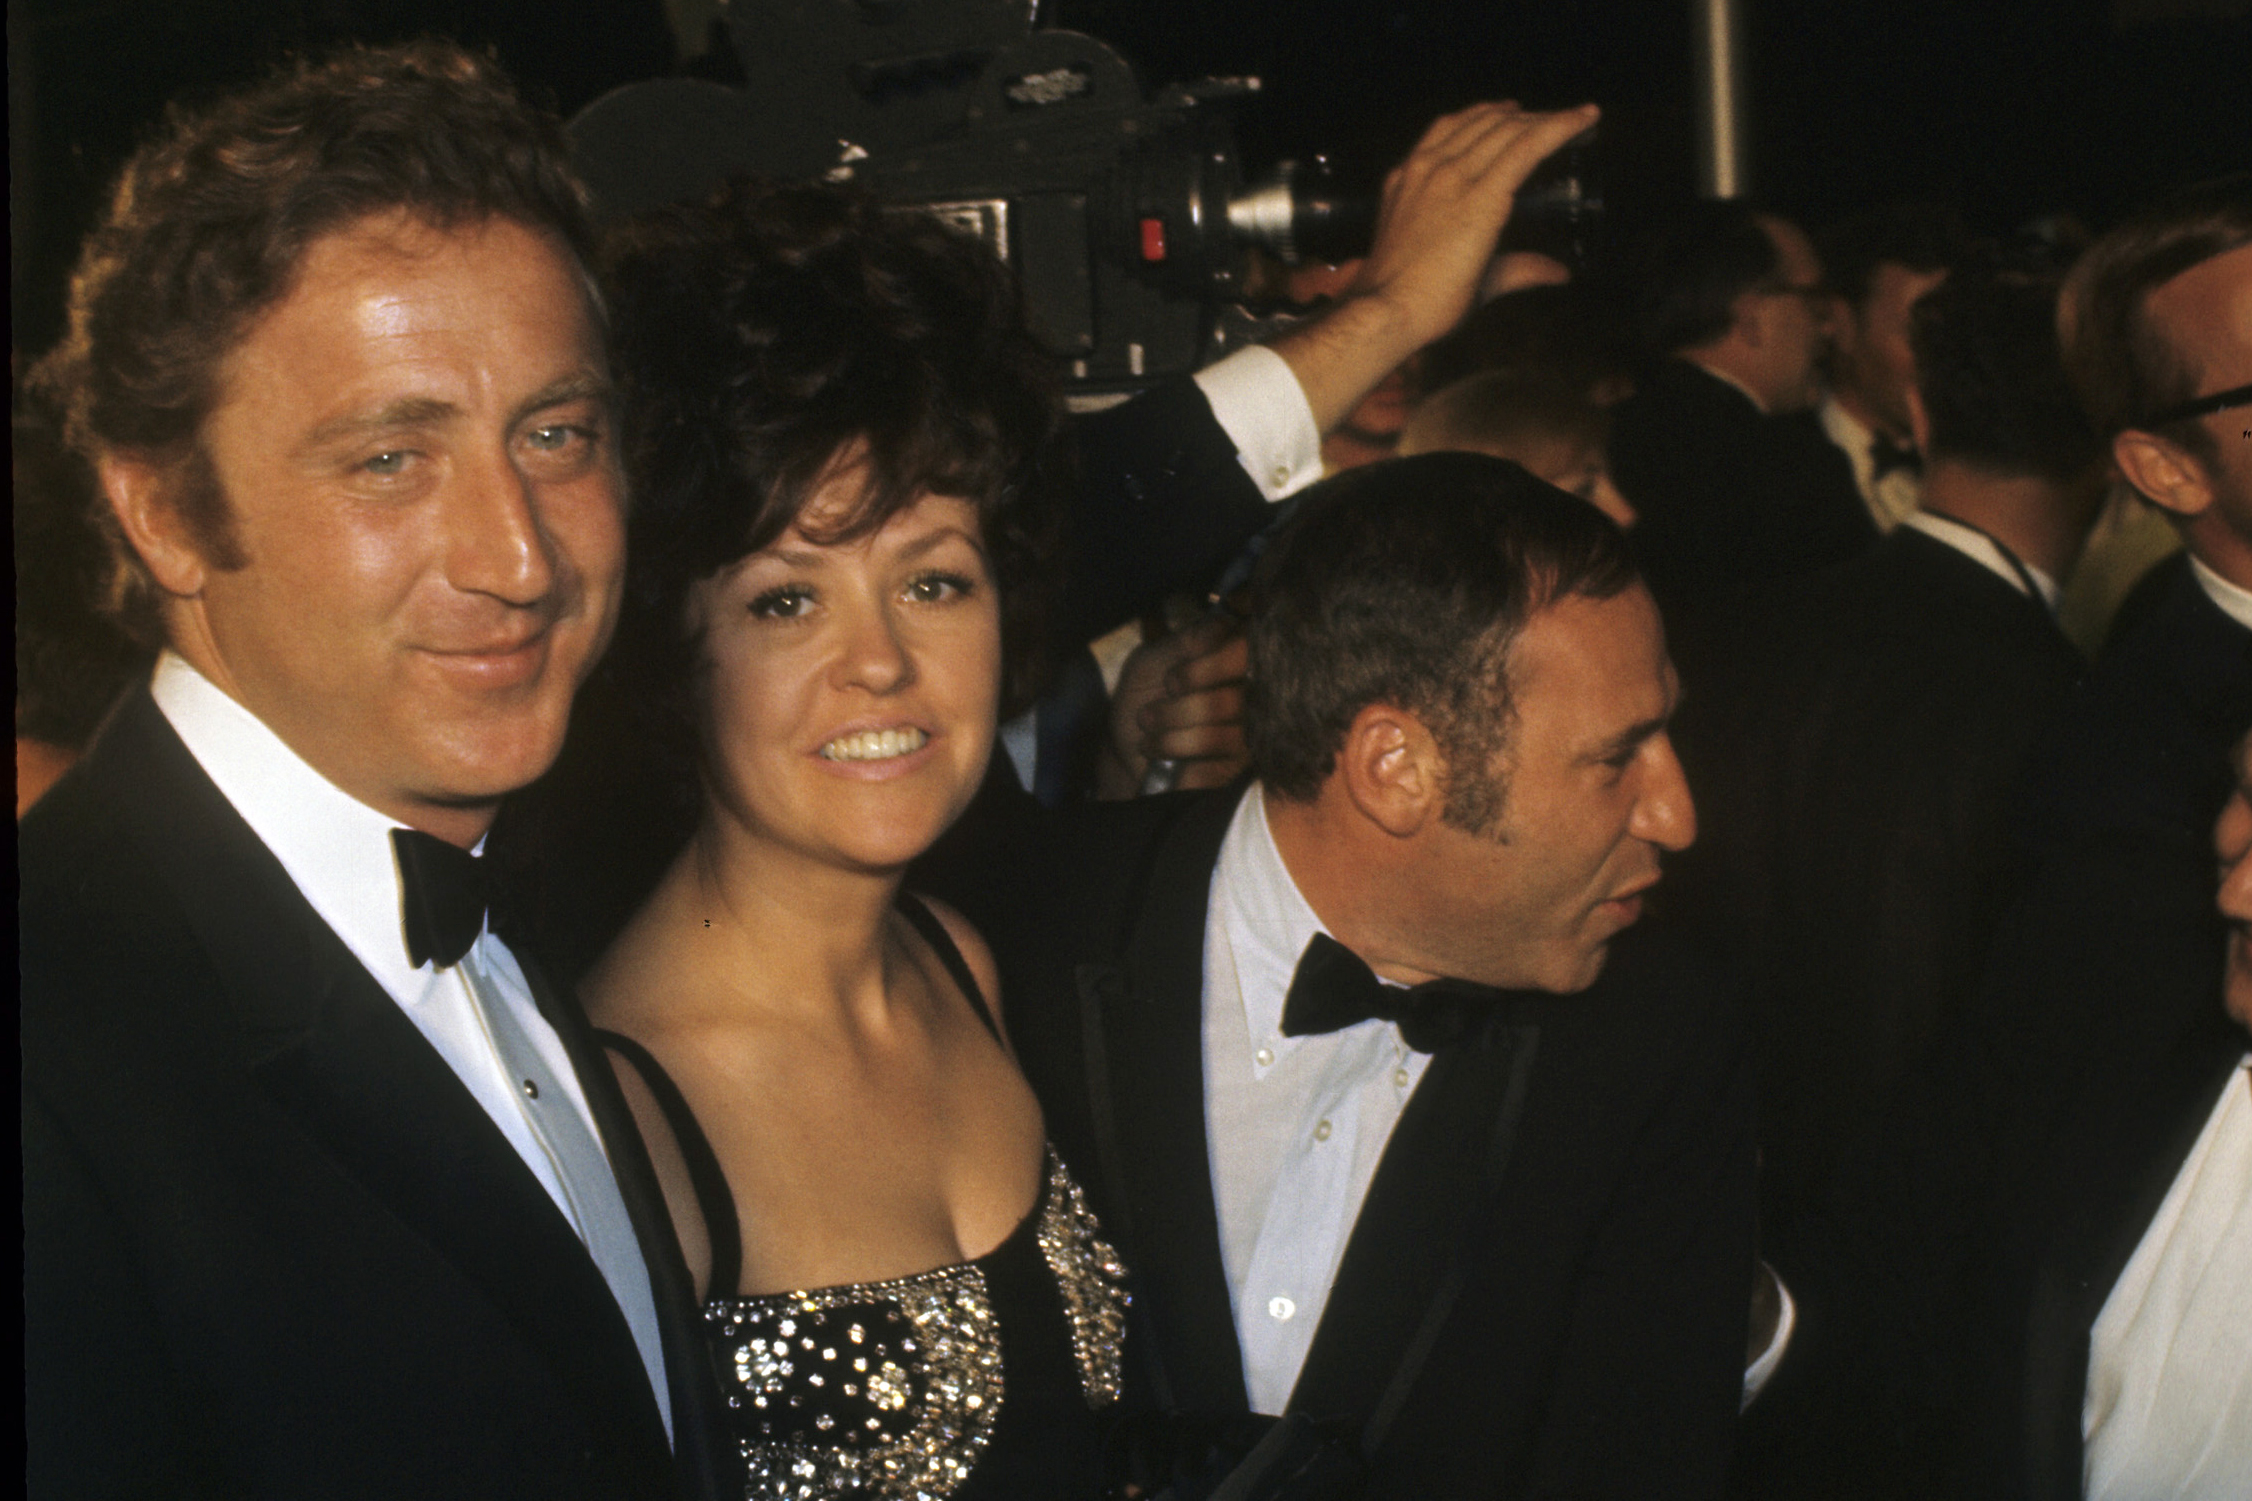 From left: Gene Wilder, Mary Joan Schultz and Mel Brooks at the Academy Awards on April 14, 1969.